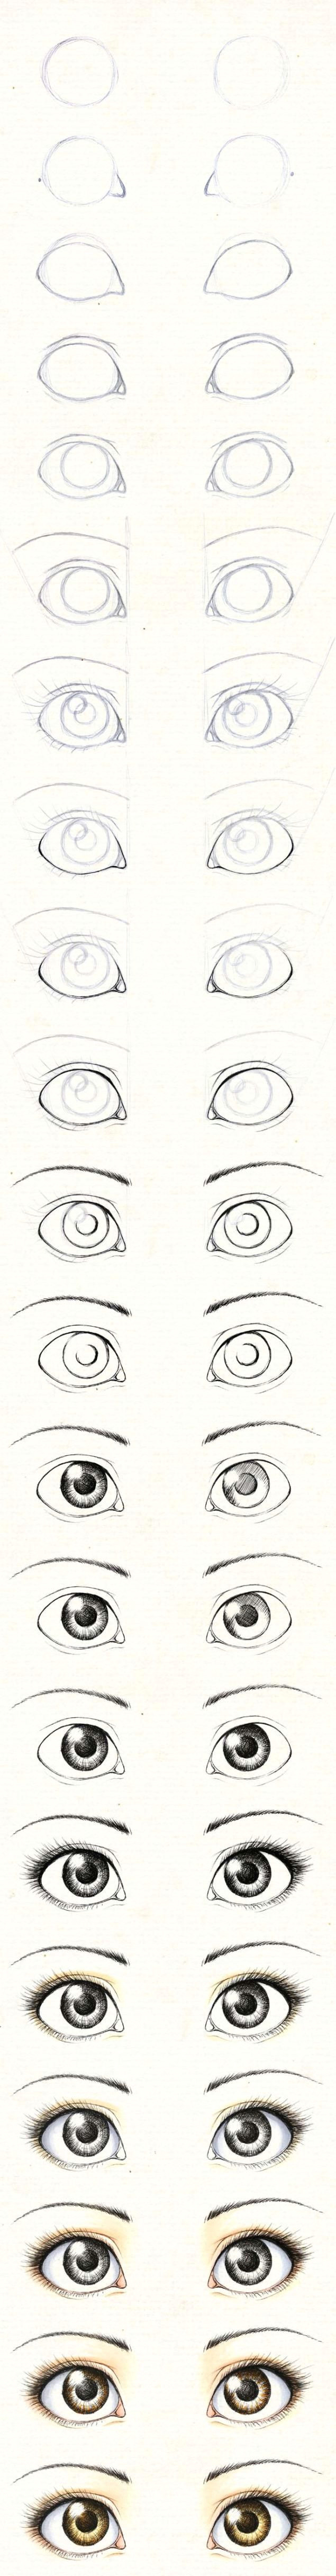 how to draw eye balls